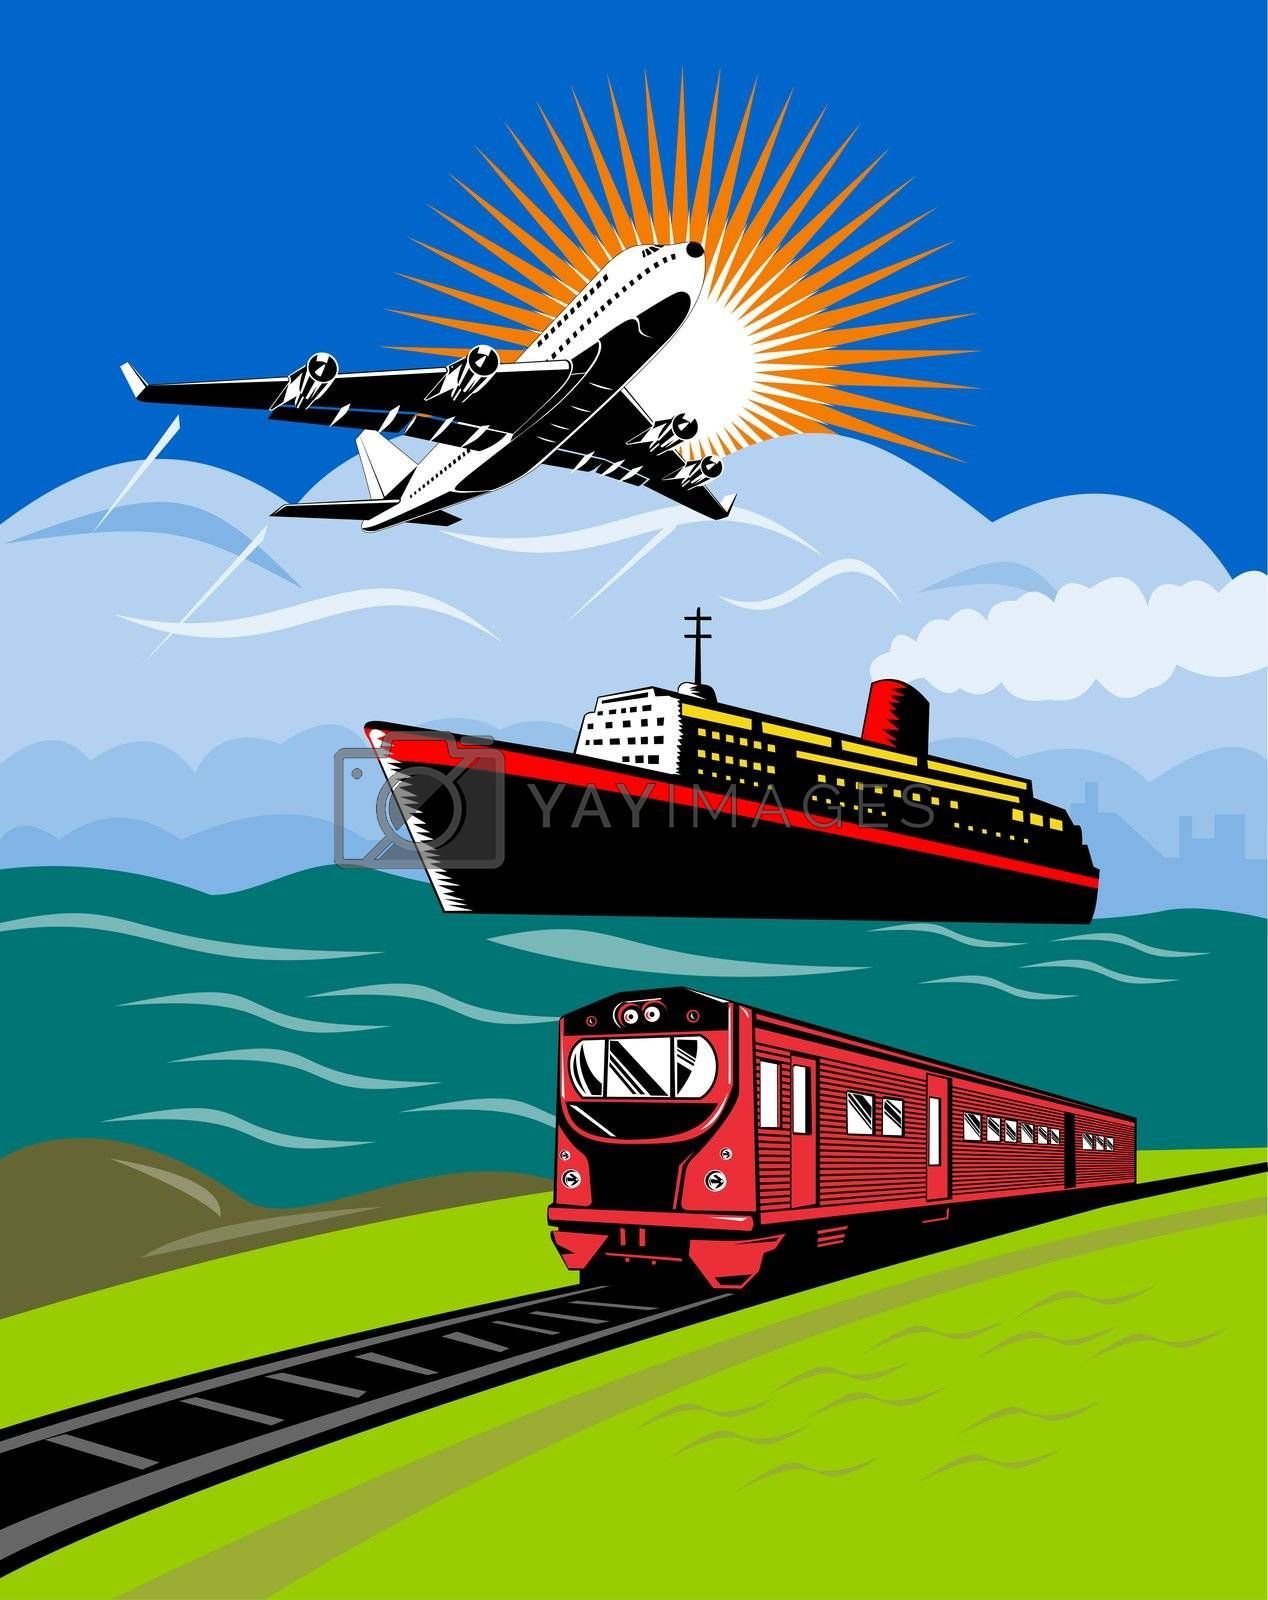 airplane boat and train by patrimonio